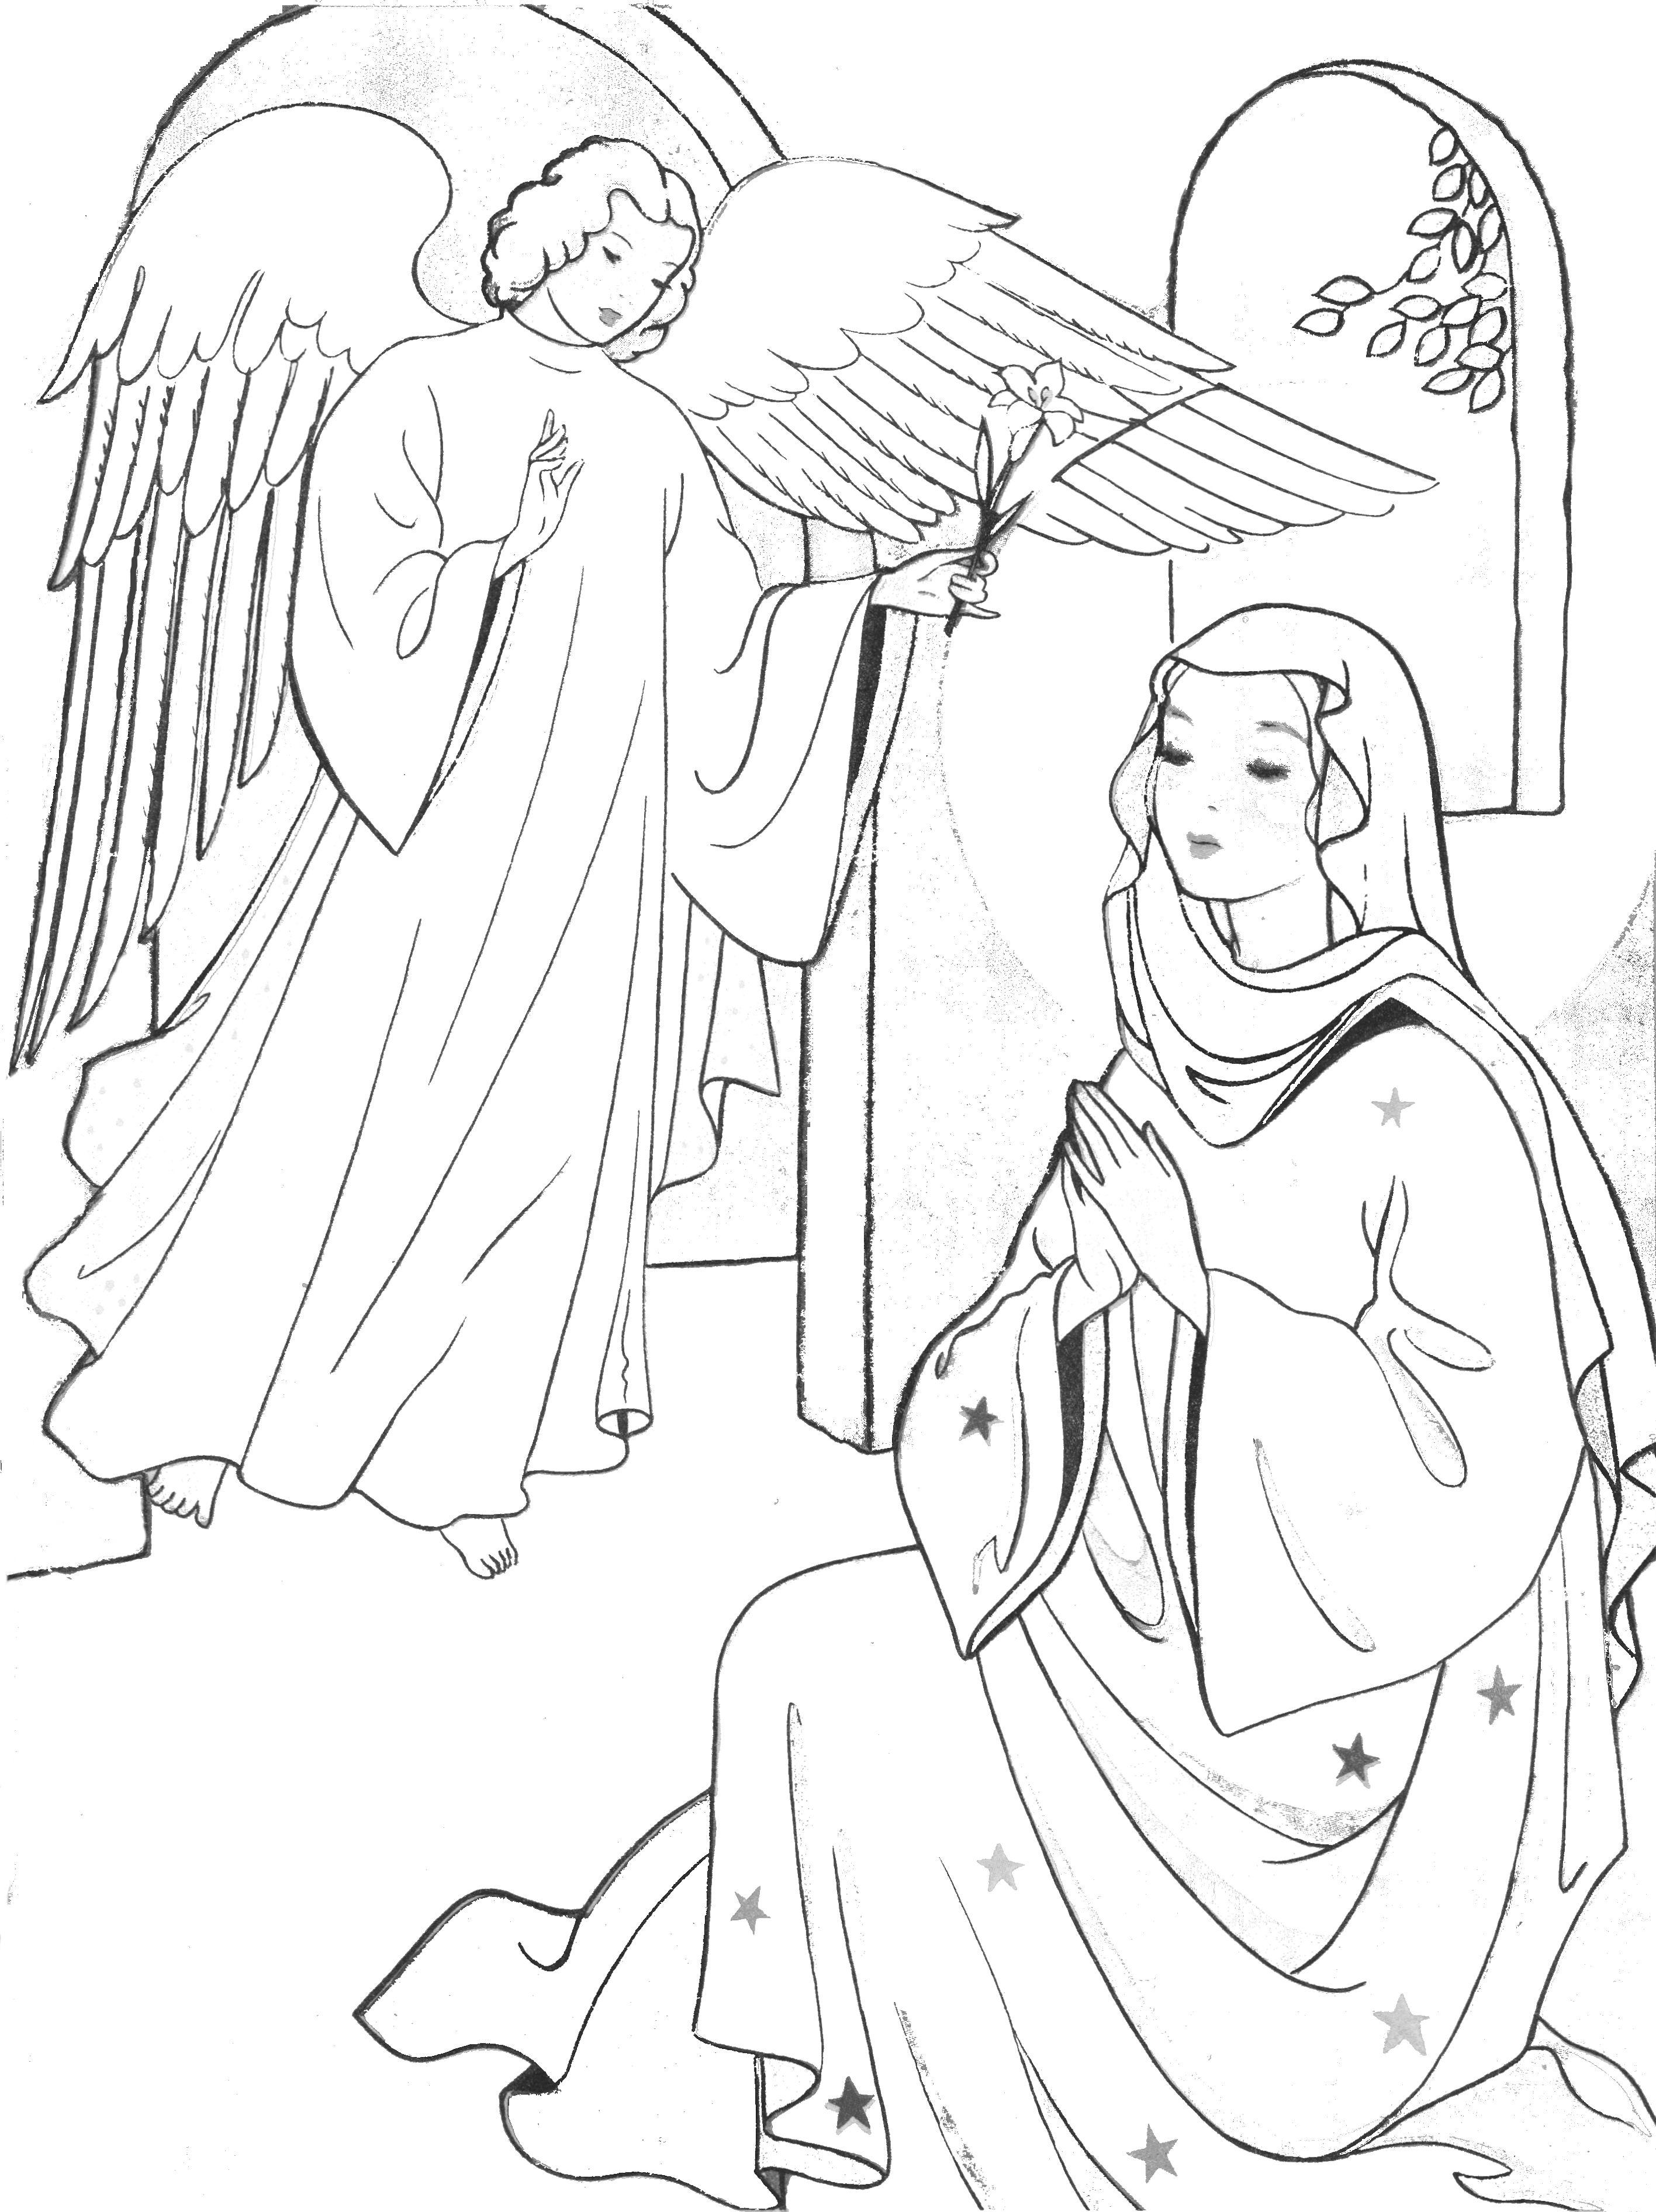 Annunciation Coloring Pages Family In Feast And Feria